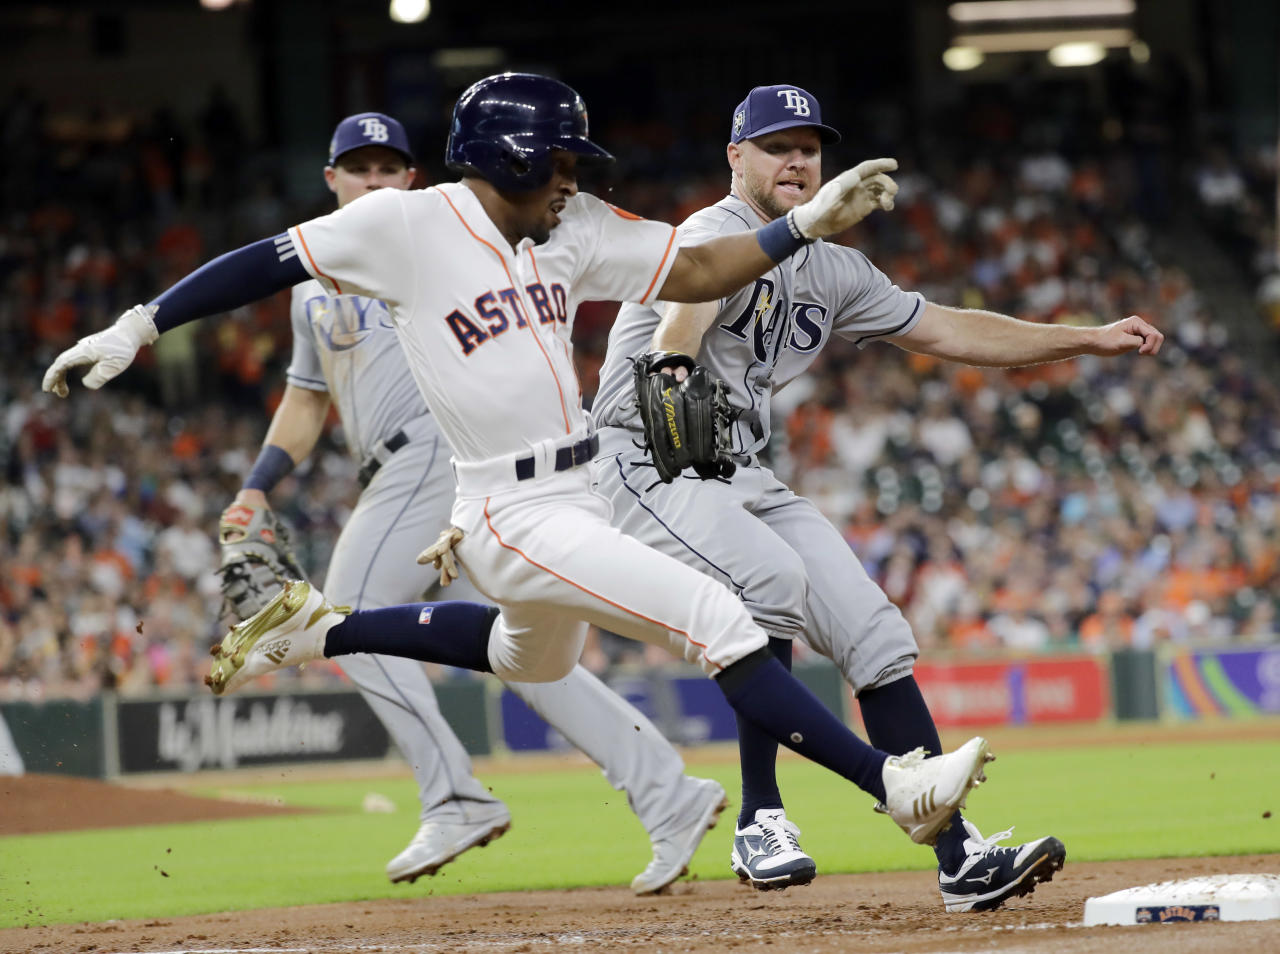 Houston Astros' Tony Kemp, left, beats Tampa Bay Rays relief pitcher Jonny Venters to first base for a hit during the third inning of a baseball game Monday, June 18, 2018, in Houston. (AP Photo/David J. Phillip)